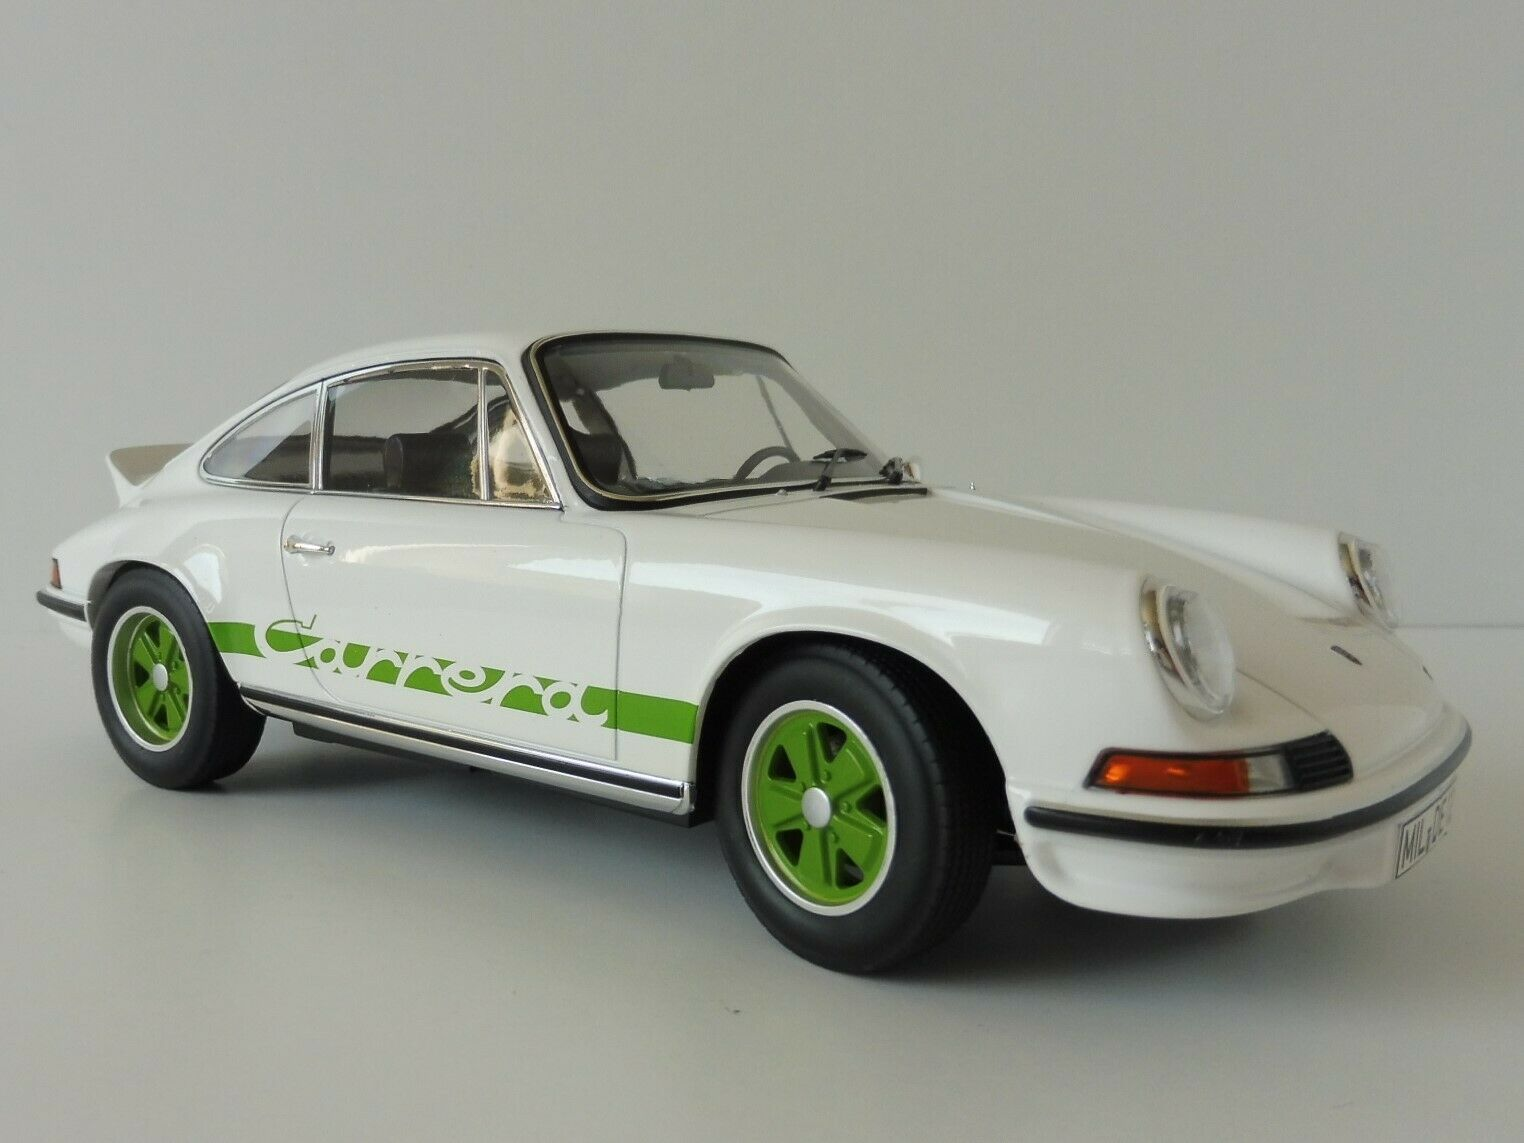 Porsche 911 Carrera Pedales Rs Touring 1973 1 18 Norev 187636 biancao 1963